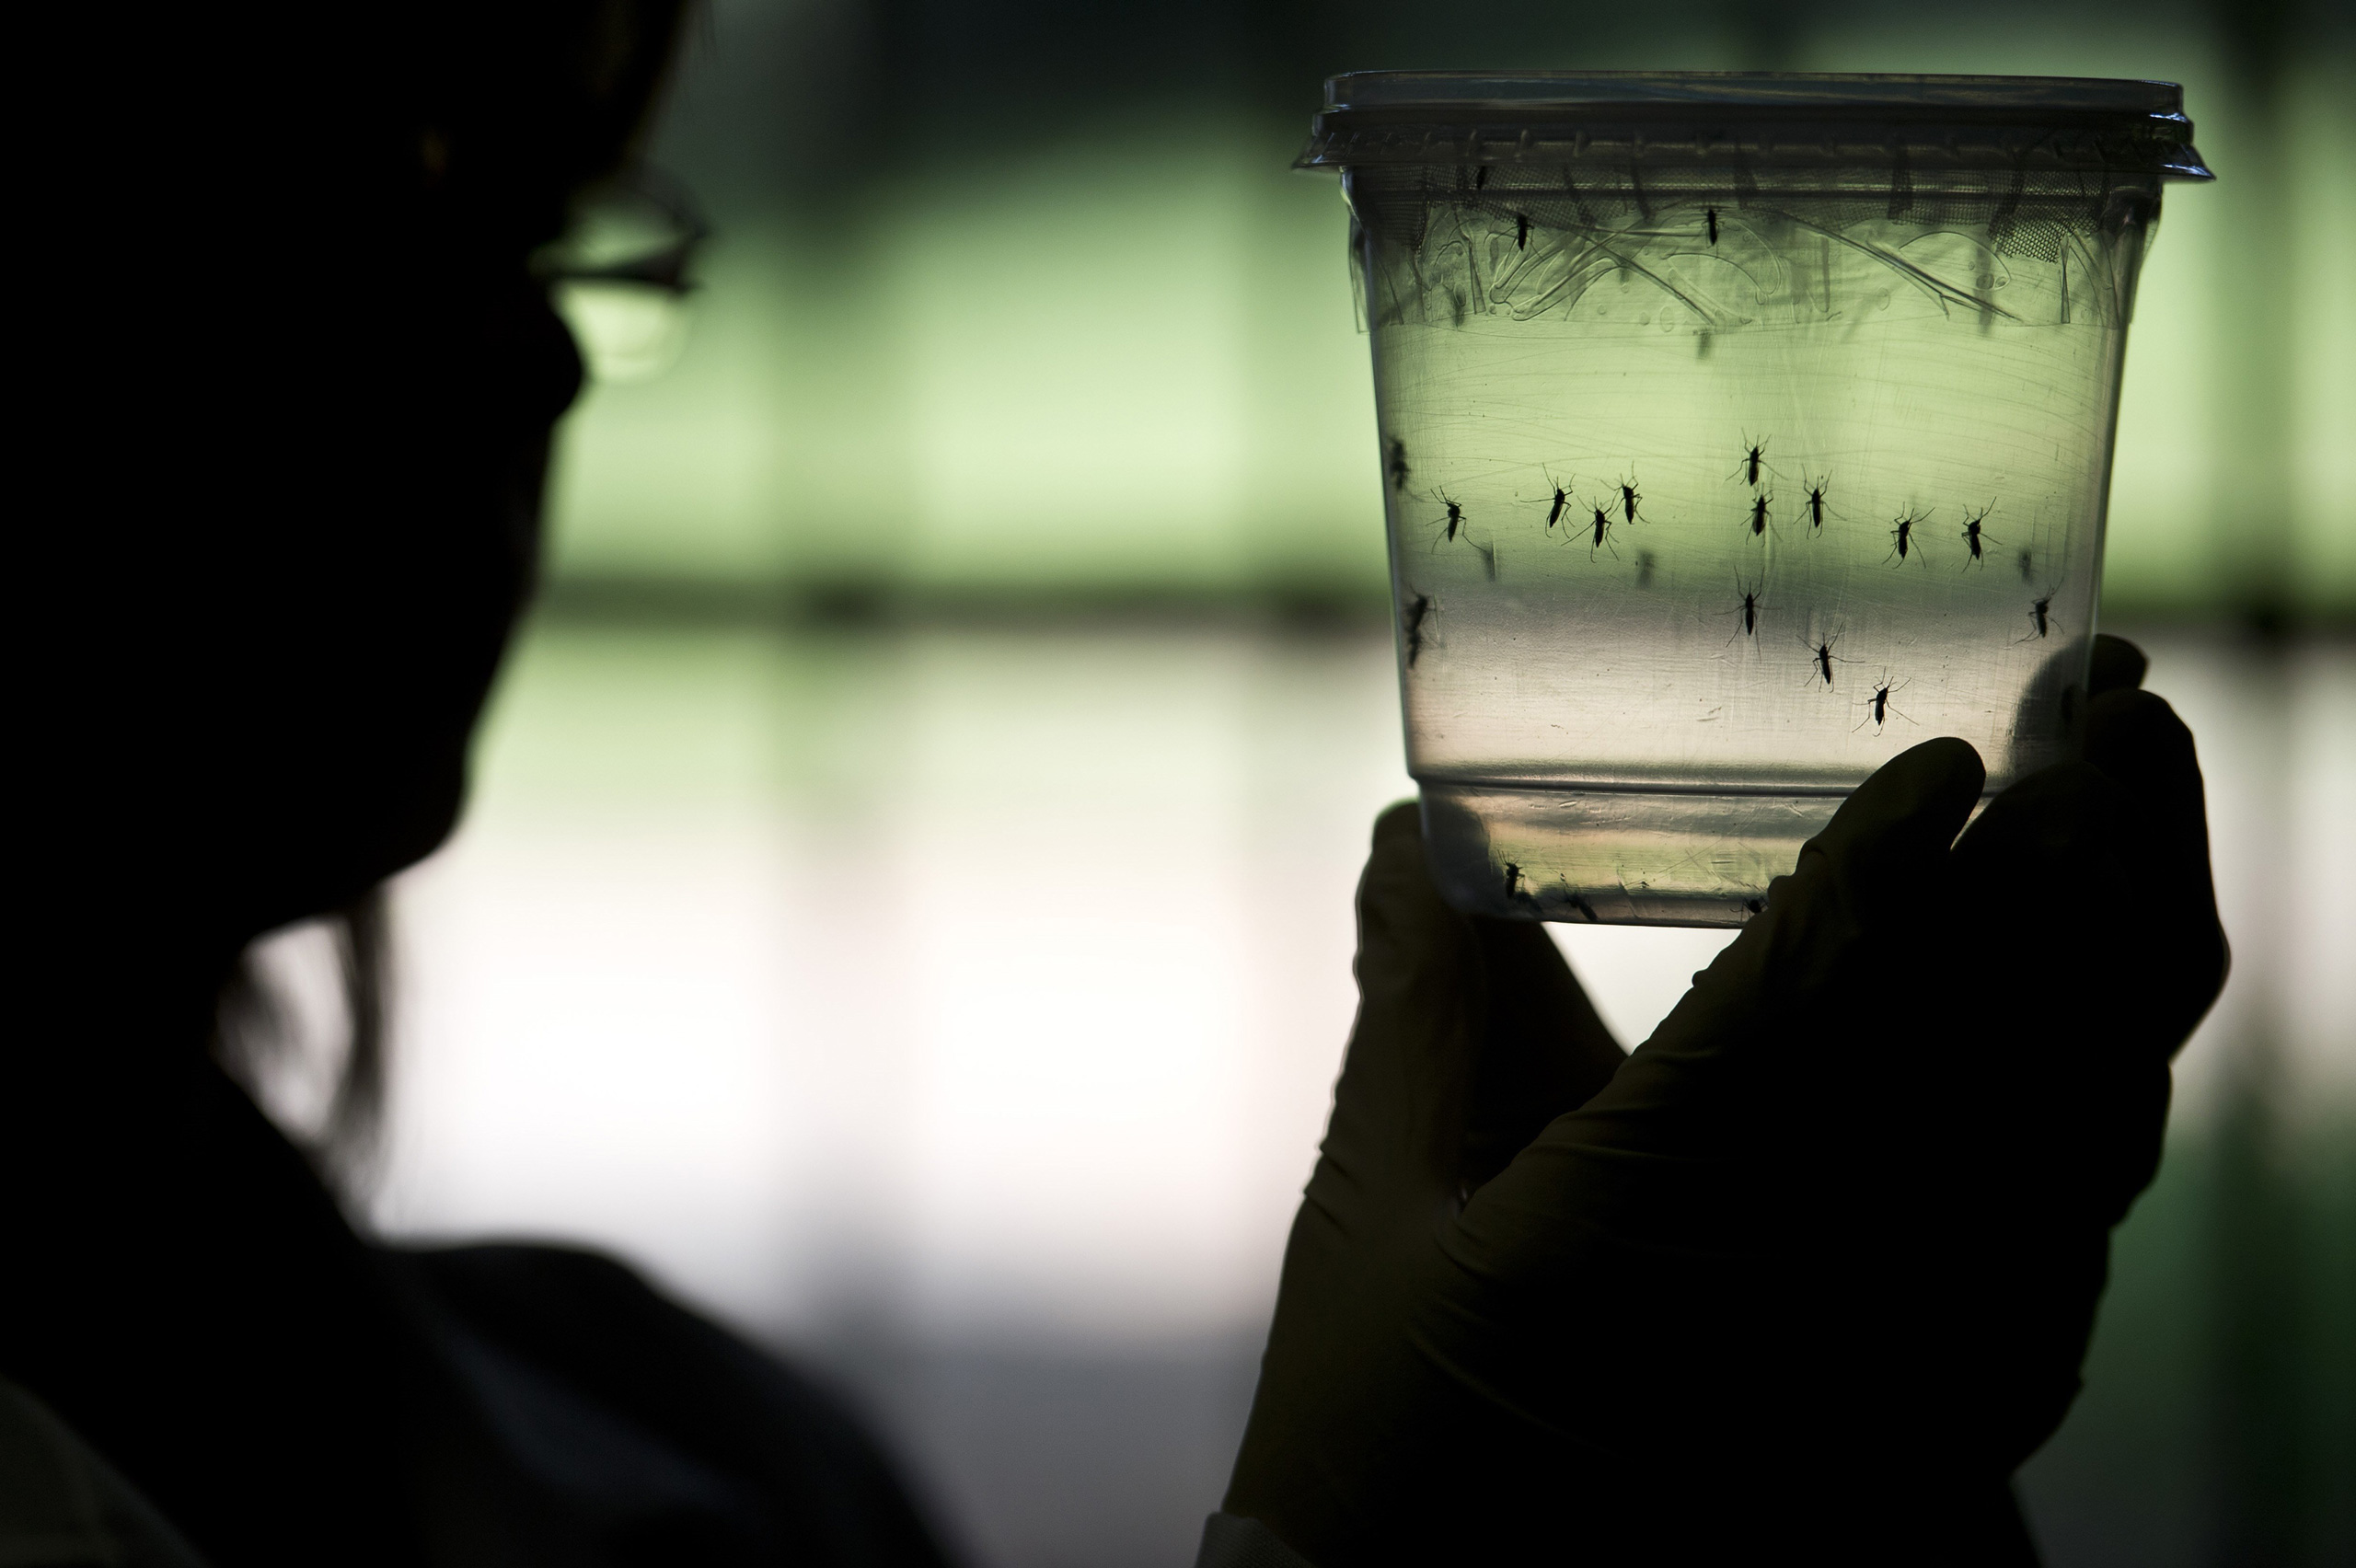 A researcher looks at Aedes aegypti mosquitoes, capable of spreading the Zika virus, at a lab in the Institute of Biomedical Sciences of the University of Sao Paulo, Brazil, on Jan. 8, 2016.